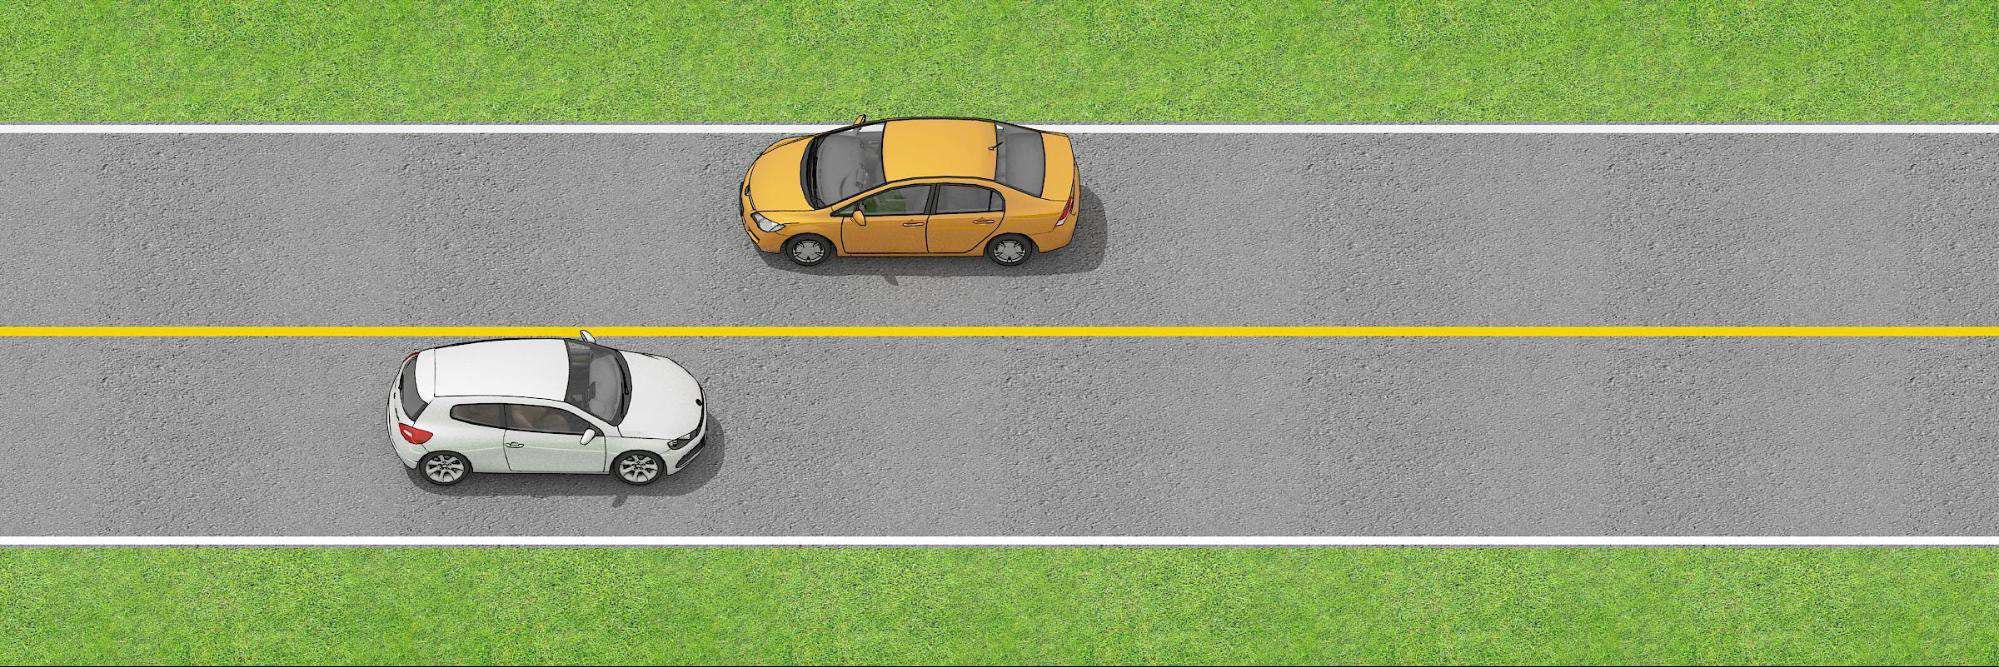 Two vehicles on the road separated by a single solid yellow  line